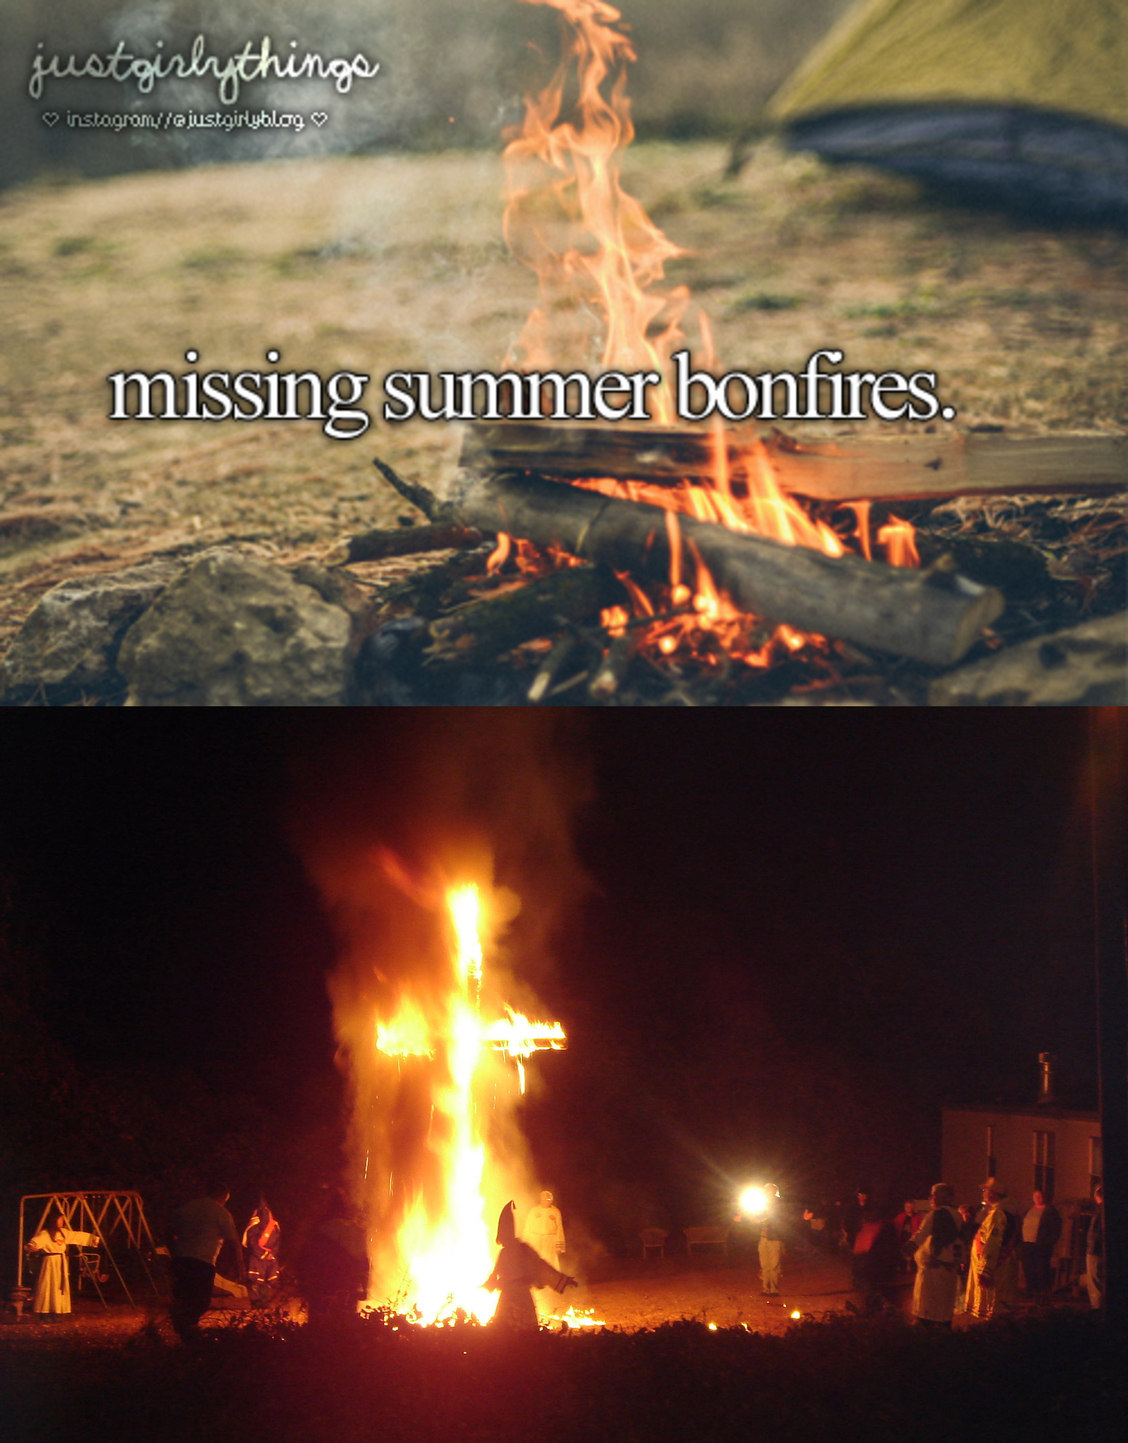 dongs in a bonfire - meme